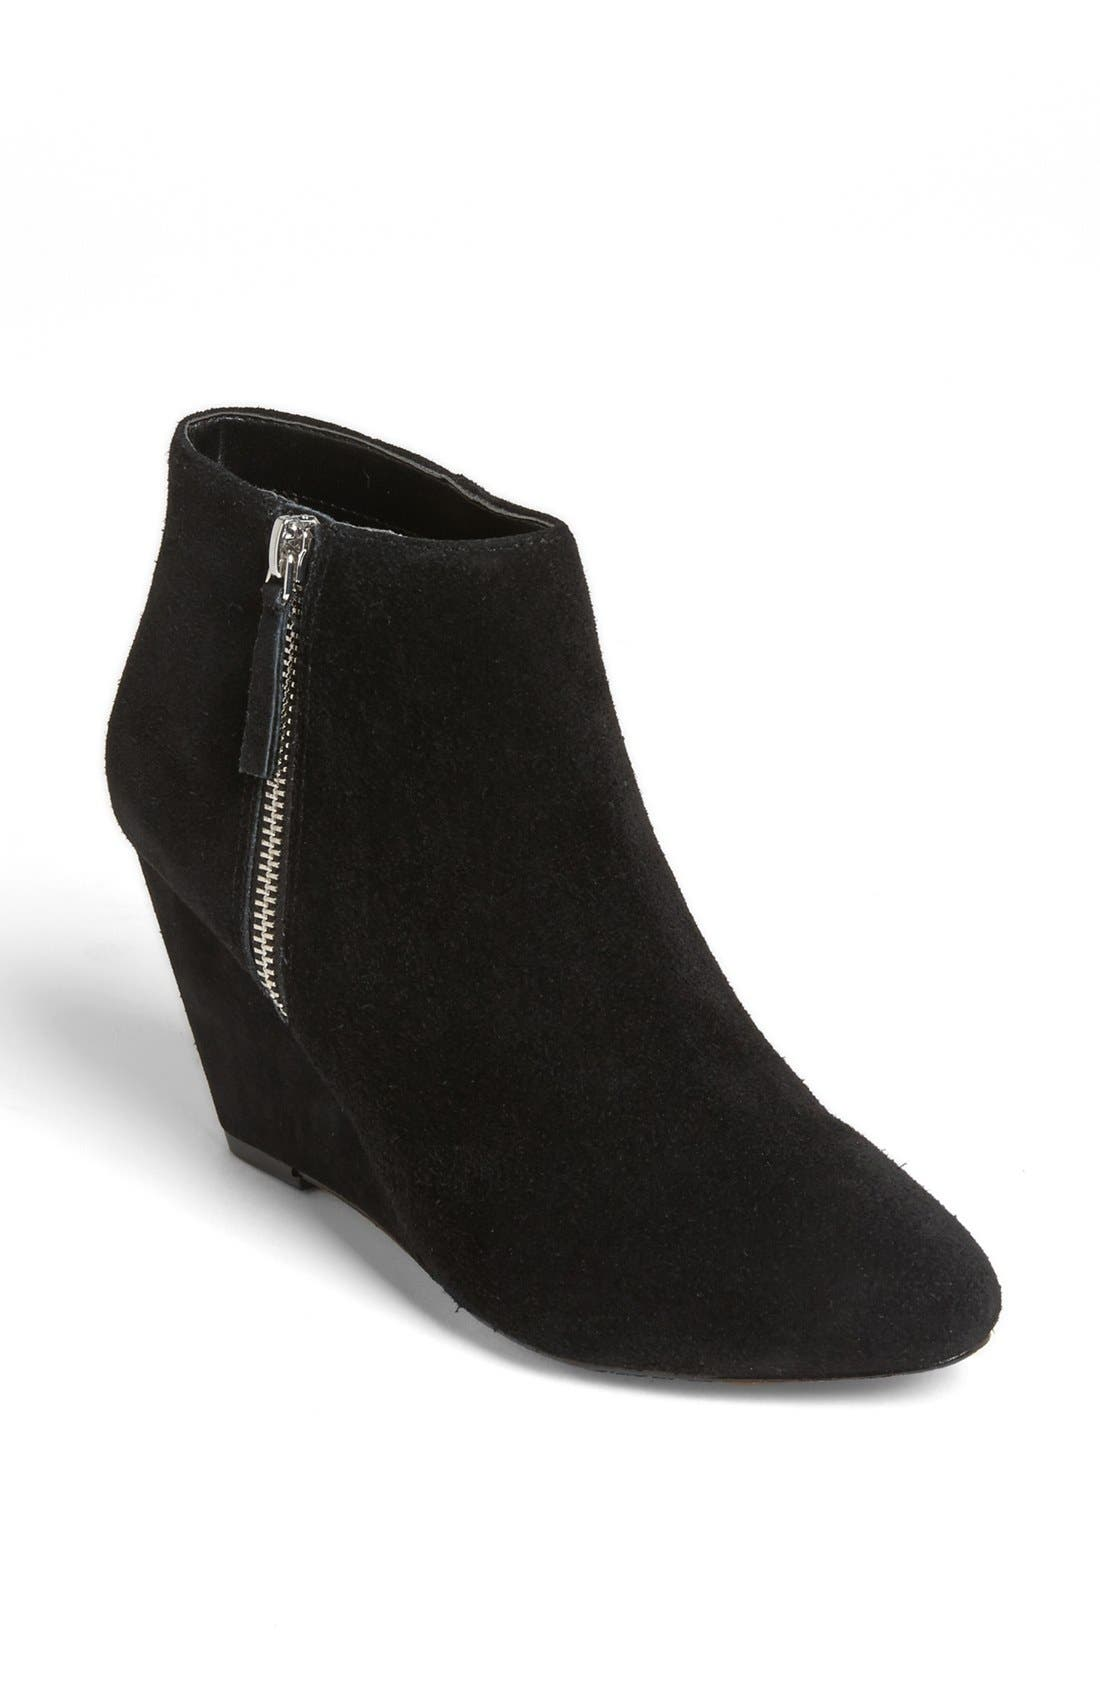 Main Image - DV by Dolce Vita 'Gino' Bootie